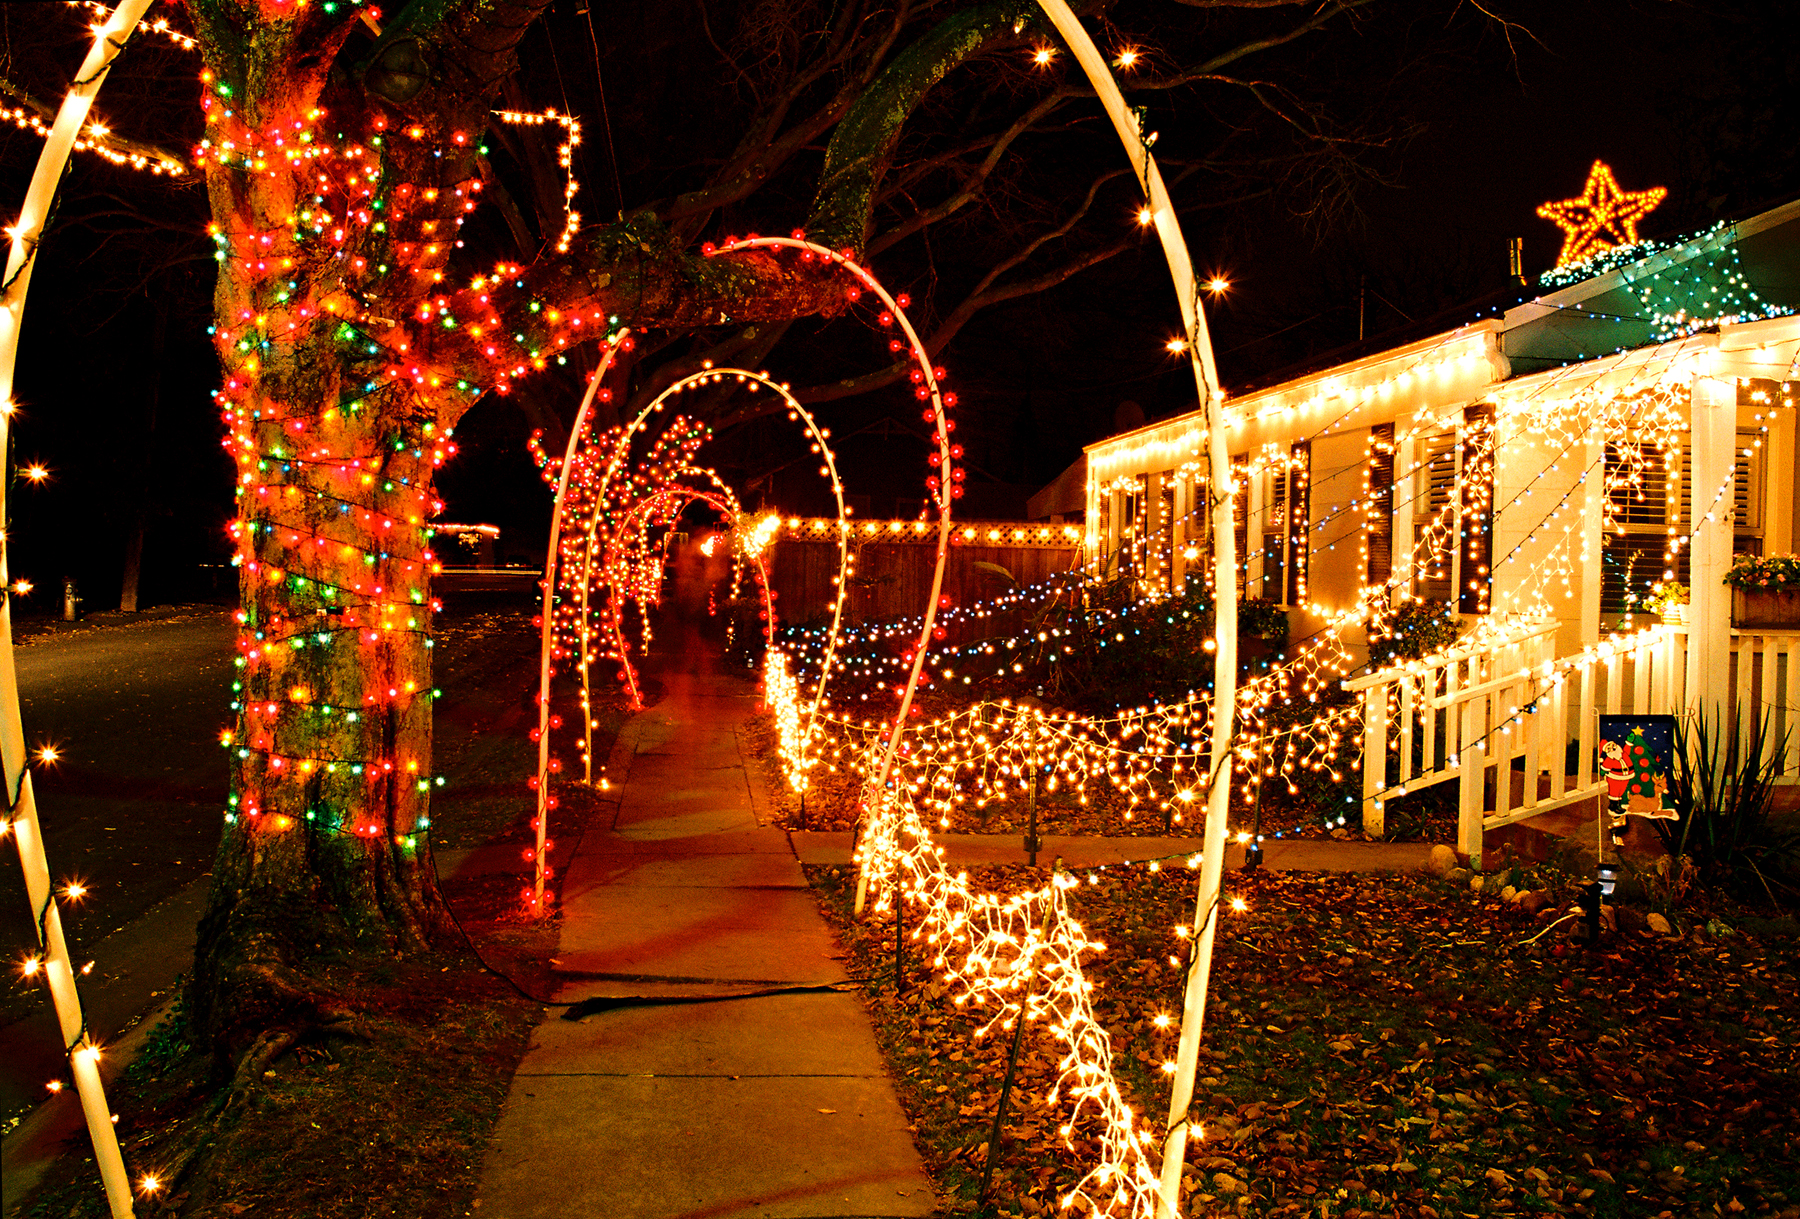 Best Christmas Lights Displays In Los Angeles For 2019 - Party City Xmas Decor